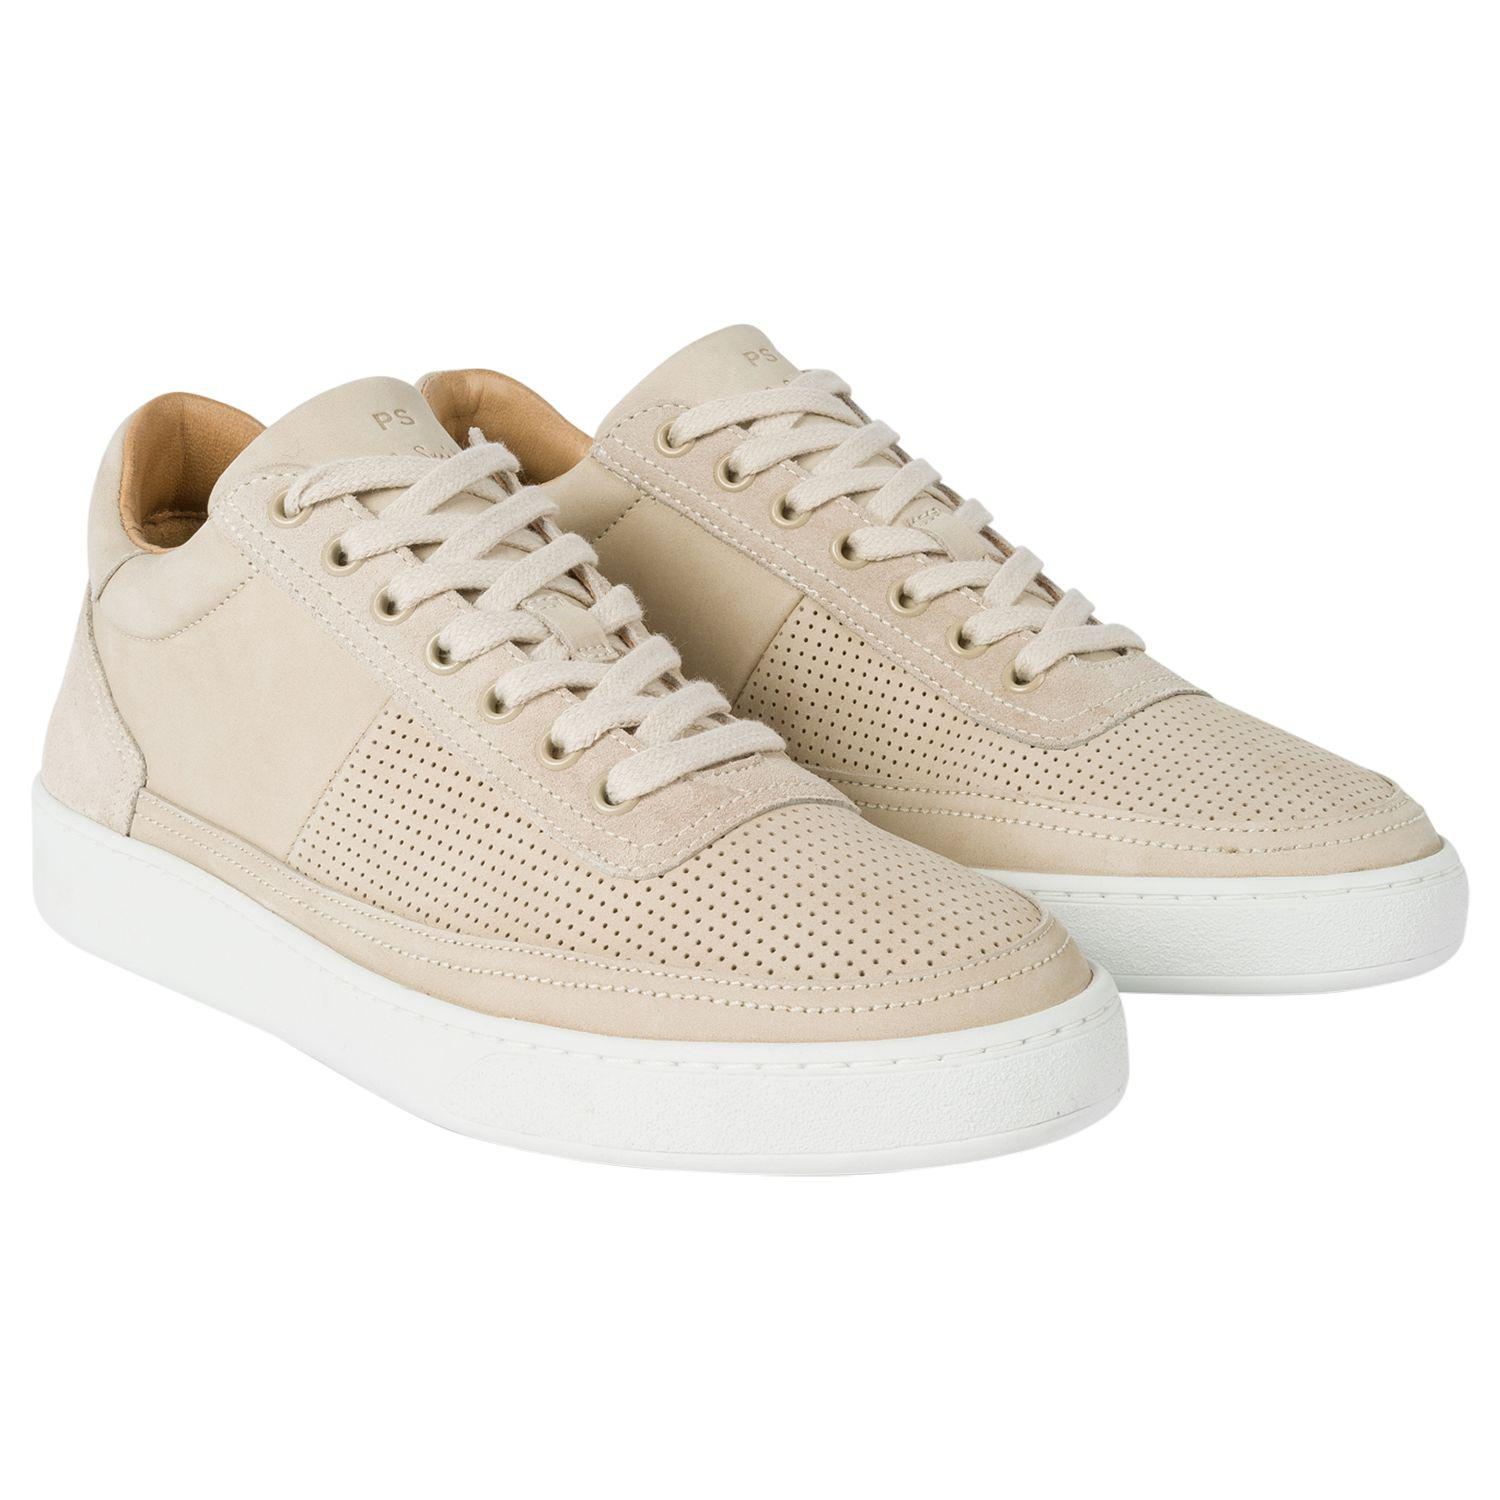 Paul Smith Leather Ps By Dizon Trainers